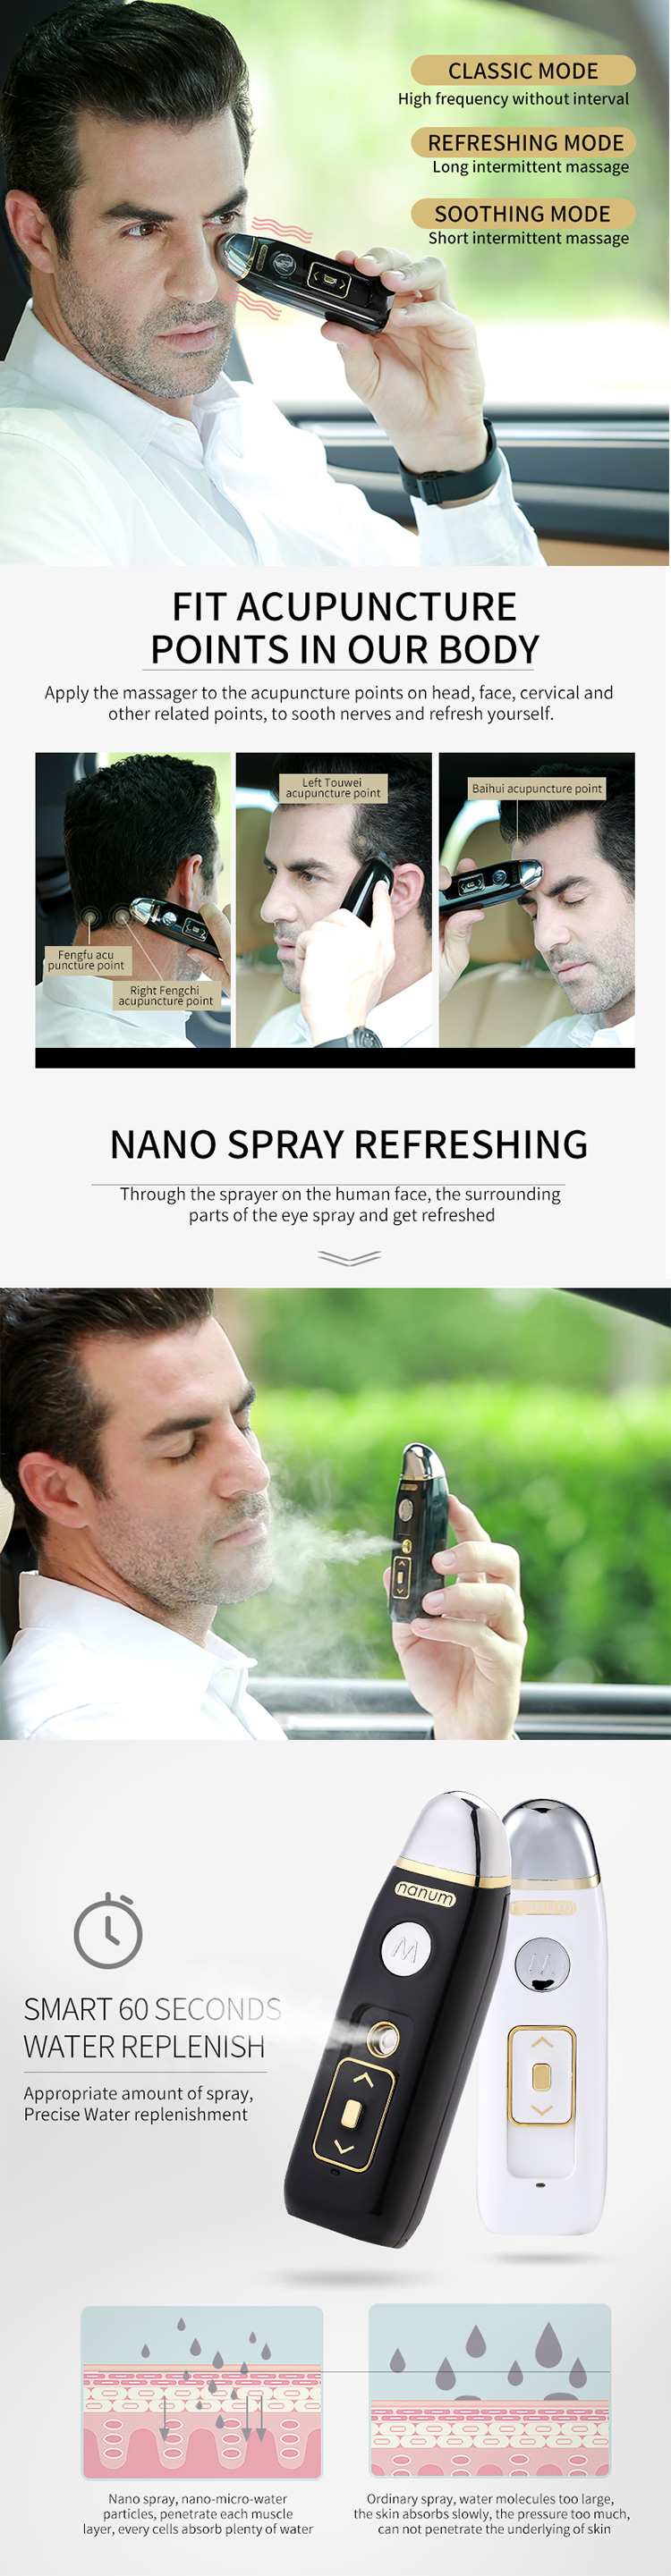 Gift Items Nano Face Mist Sprayer Men Mini Vibrator Vibration Facial Massage Machine